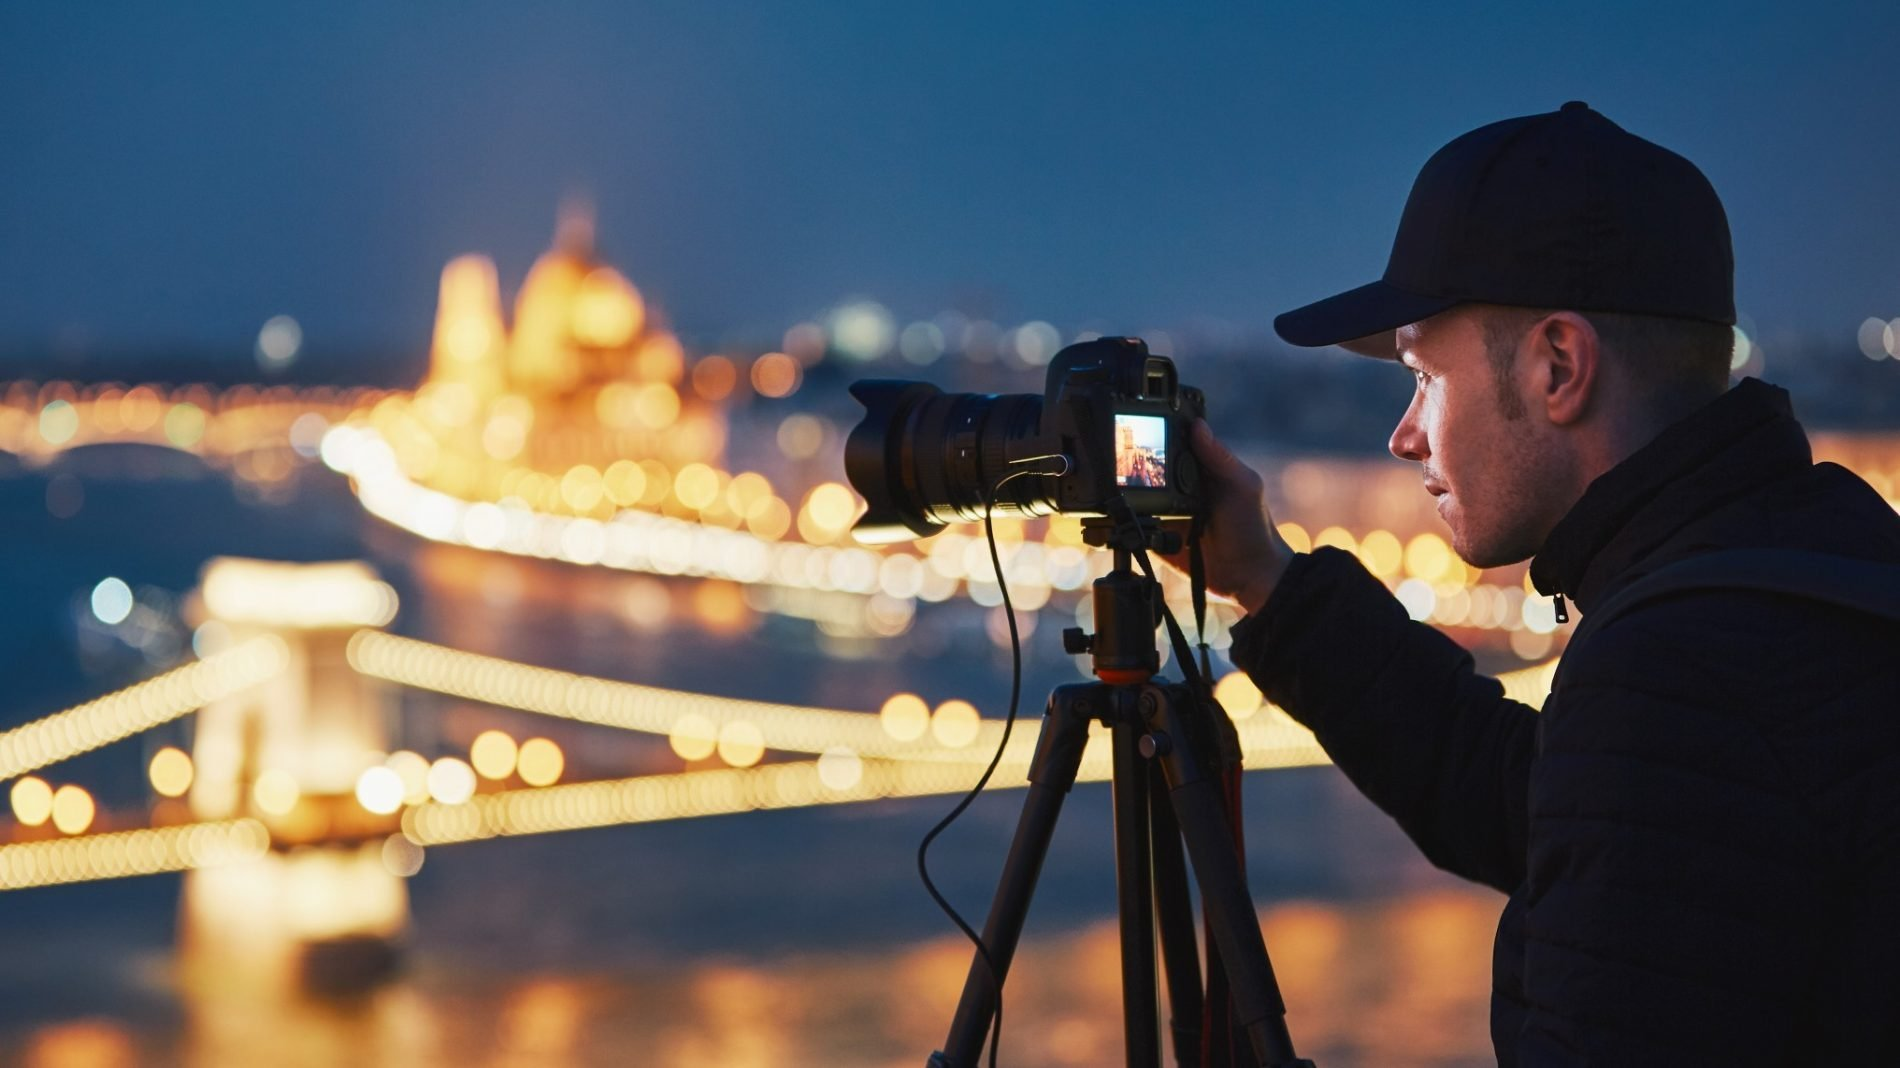 Young man taking a photo of a city